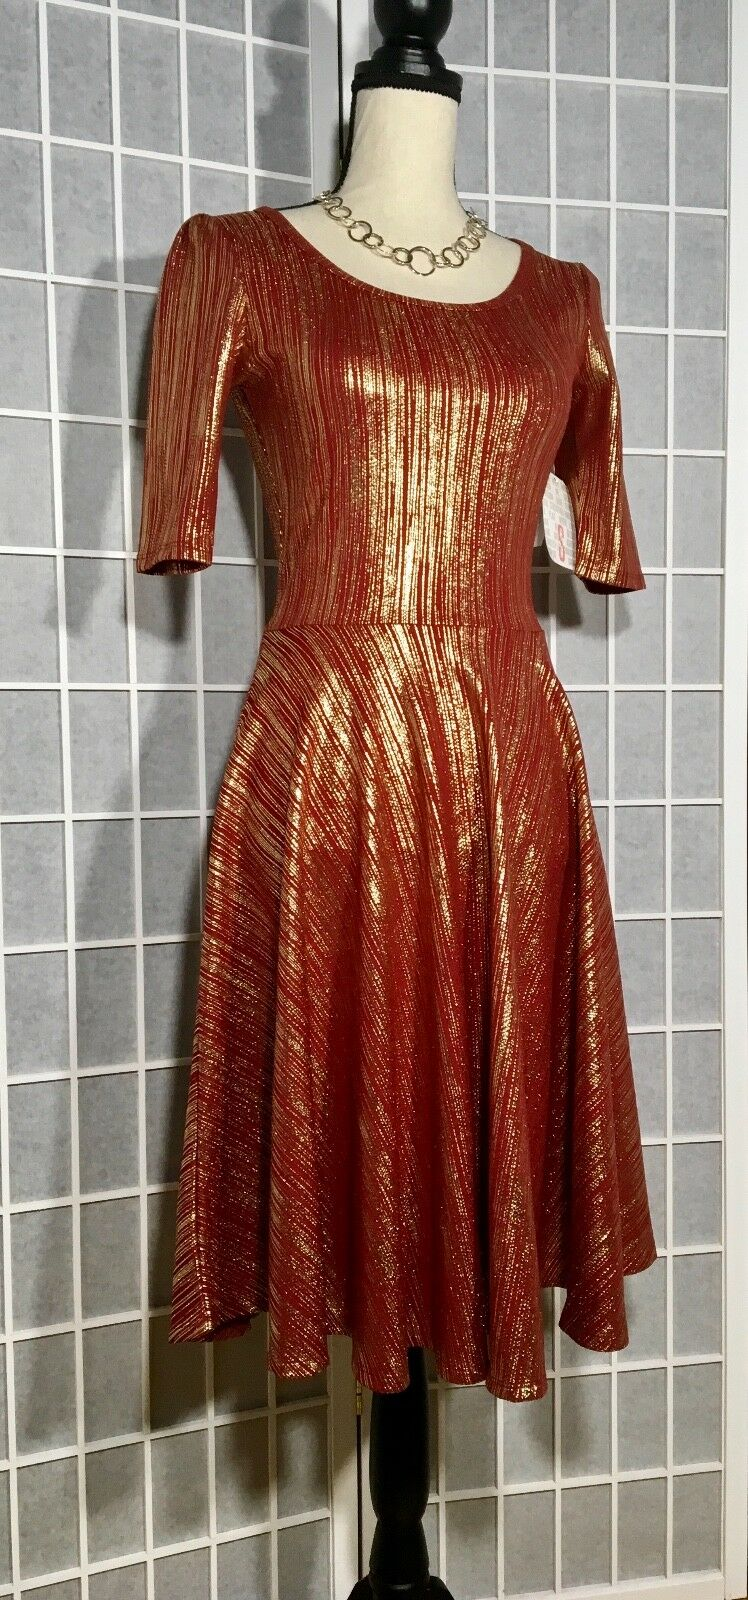 Lularoe NWT Elegant Collection Nicole Holiday Dress Metallic Gold rot Sz Small S